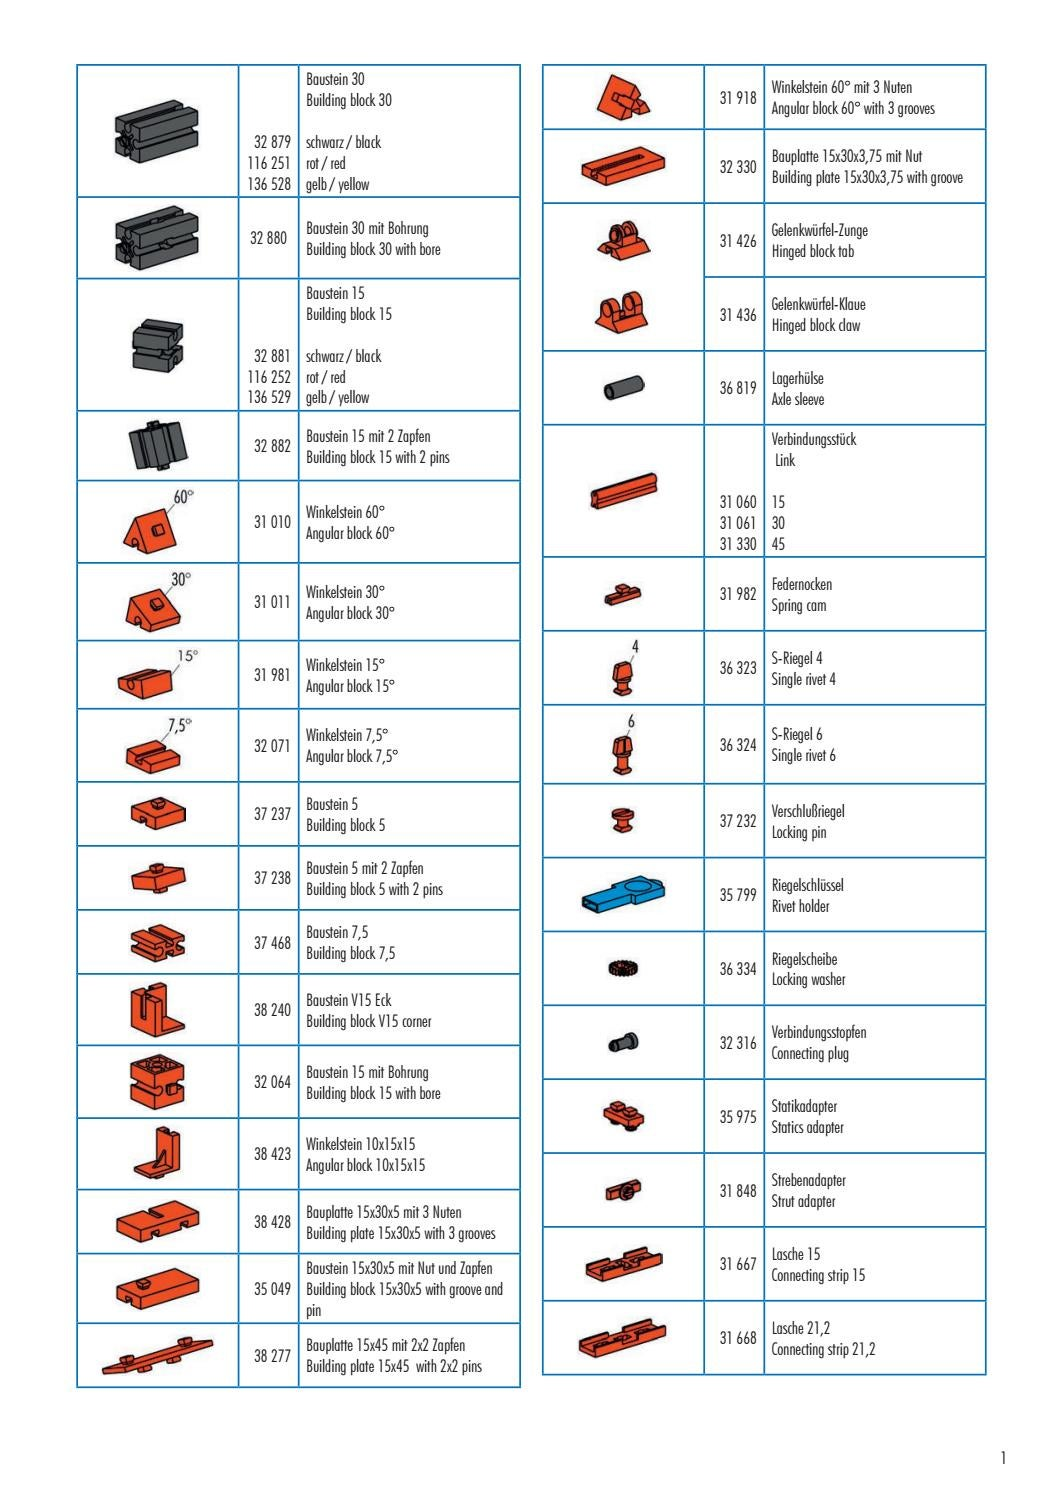 fischertechnik part list 2017 (individual ordering available) by ...